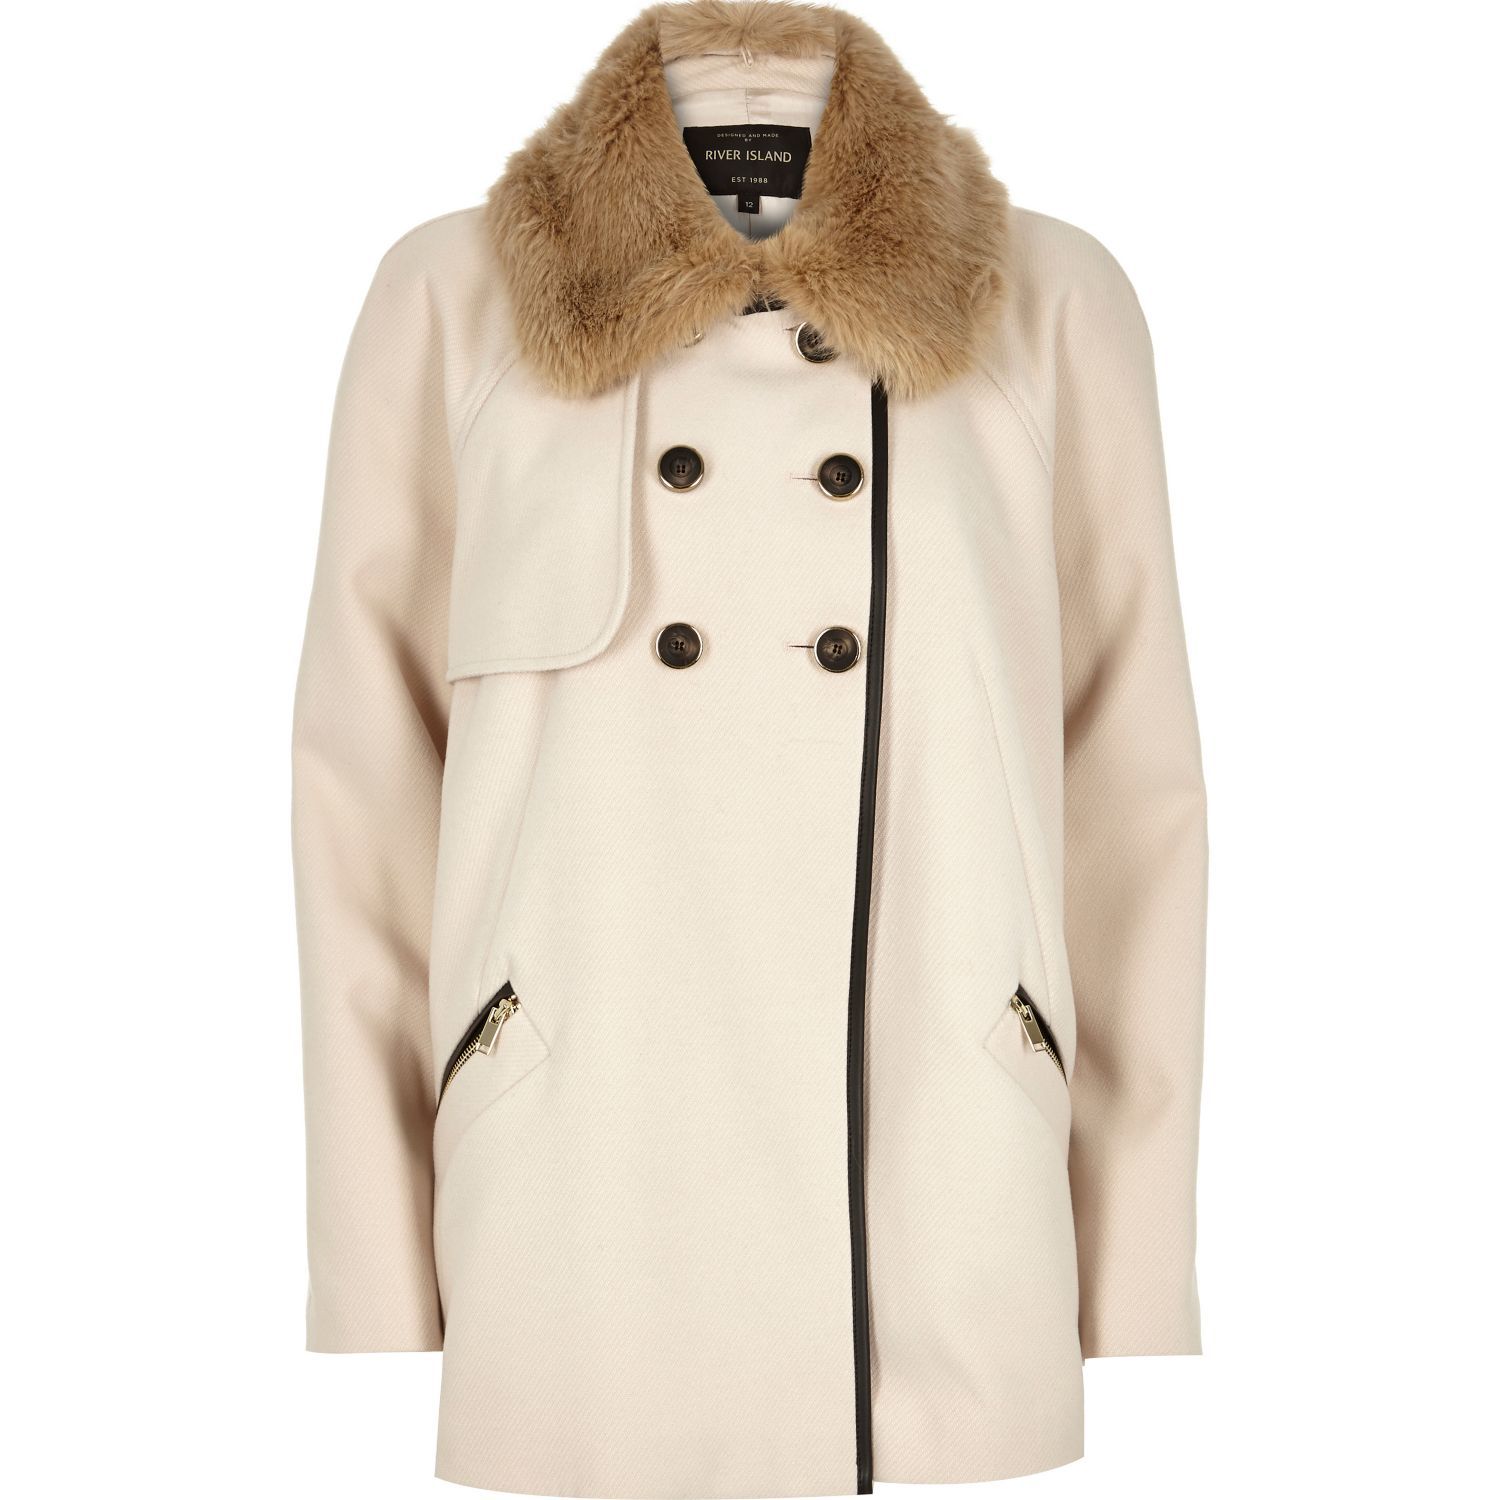 River island Cream 60s Faux Fur Collar Pea Coat in Natural | Lyst